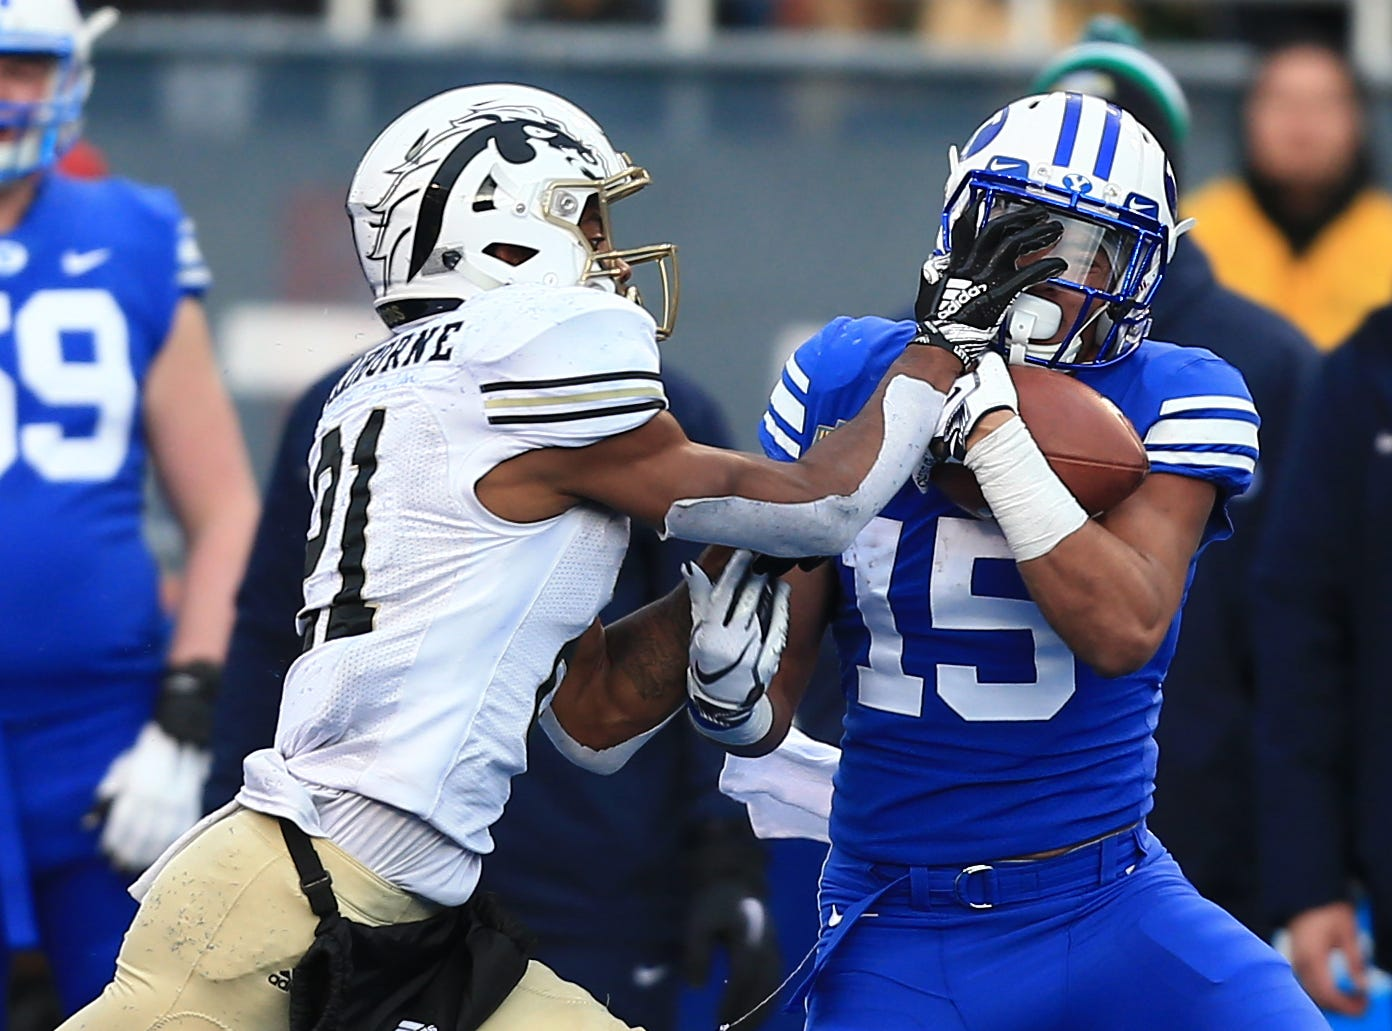 Brigham Young Cougars wide receiver Aleva Hifo (15) catches a pass against Western Michigan Broncos defensive back Stefan Claiborne (21) during the Potato Bowl.